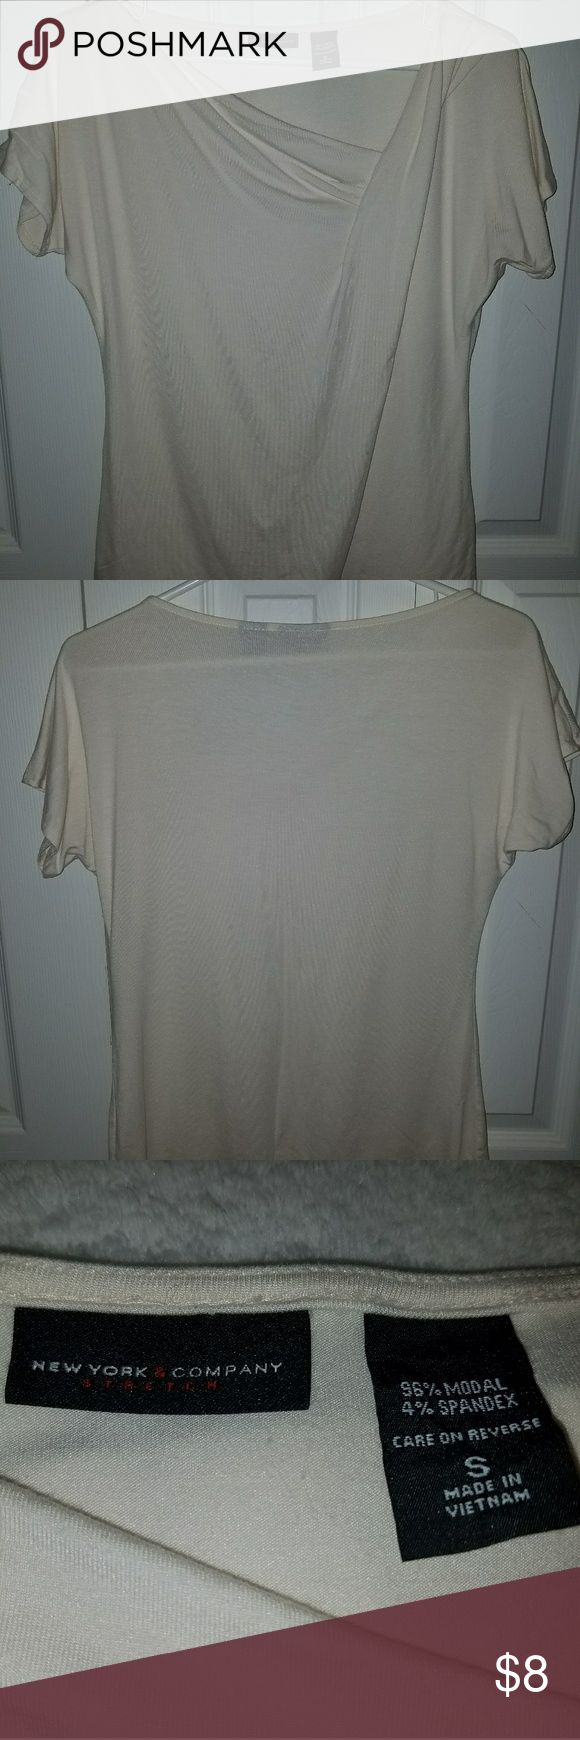 New York & Company shirt Size Small slouchy neck cream colored shirt New York & Company Tops Blouses